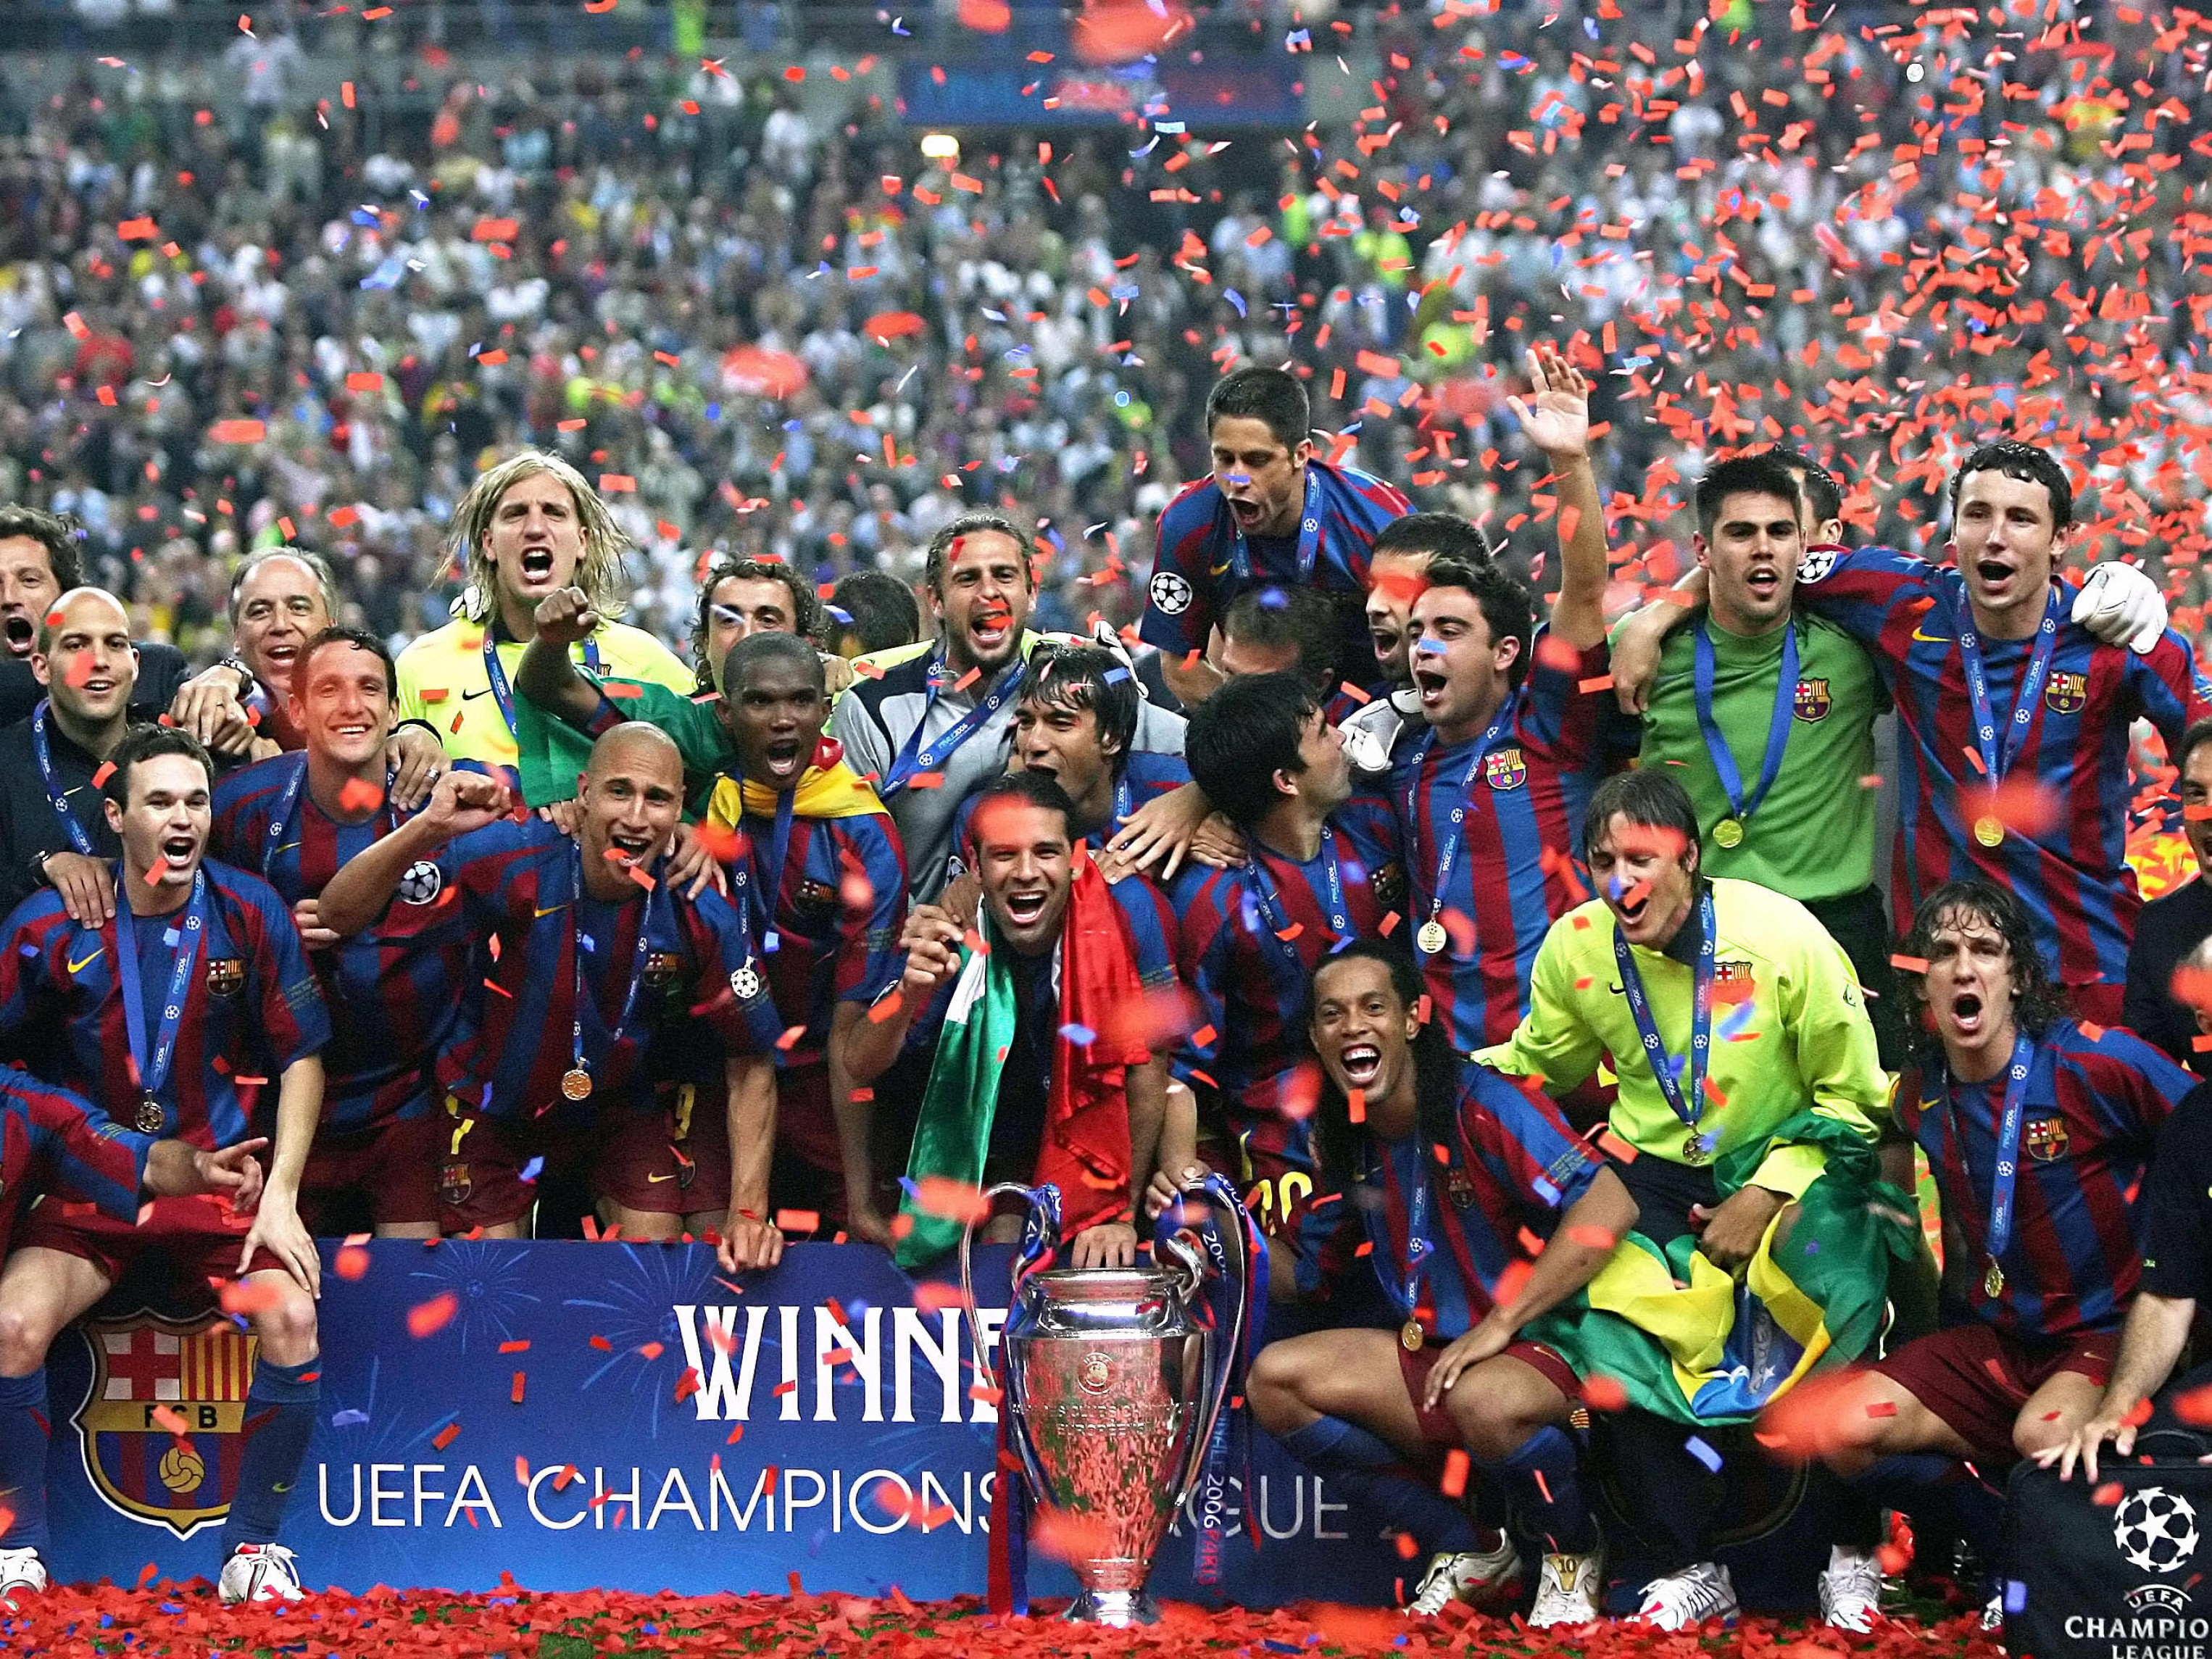 Barcelonas-players-celebrate-with-the-t-1558113645.jpg